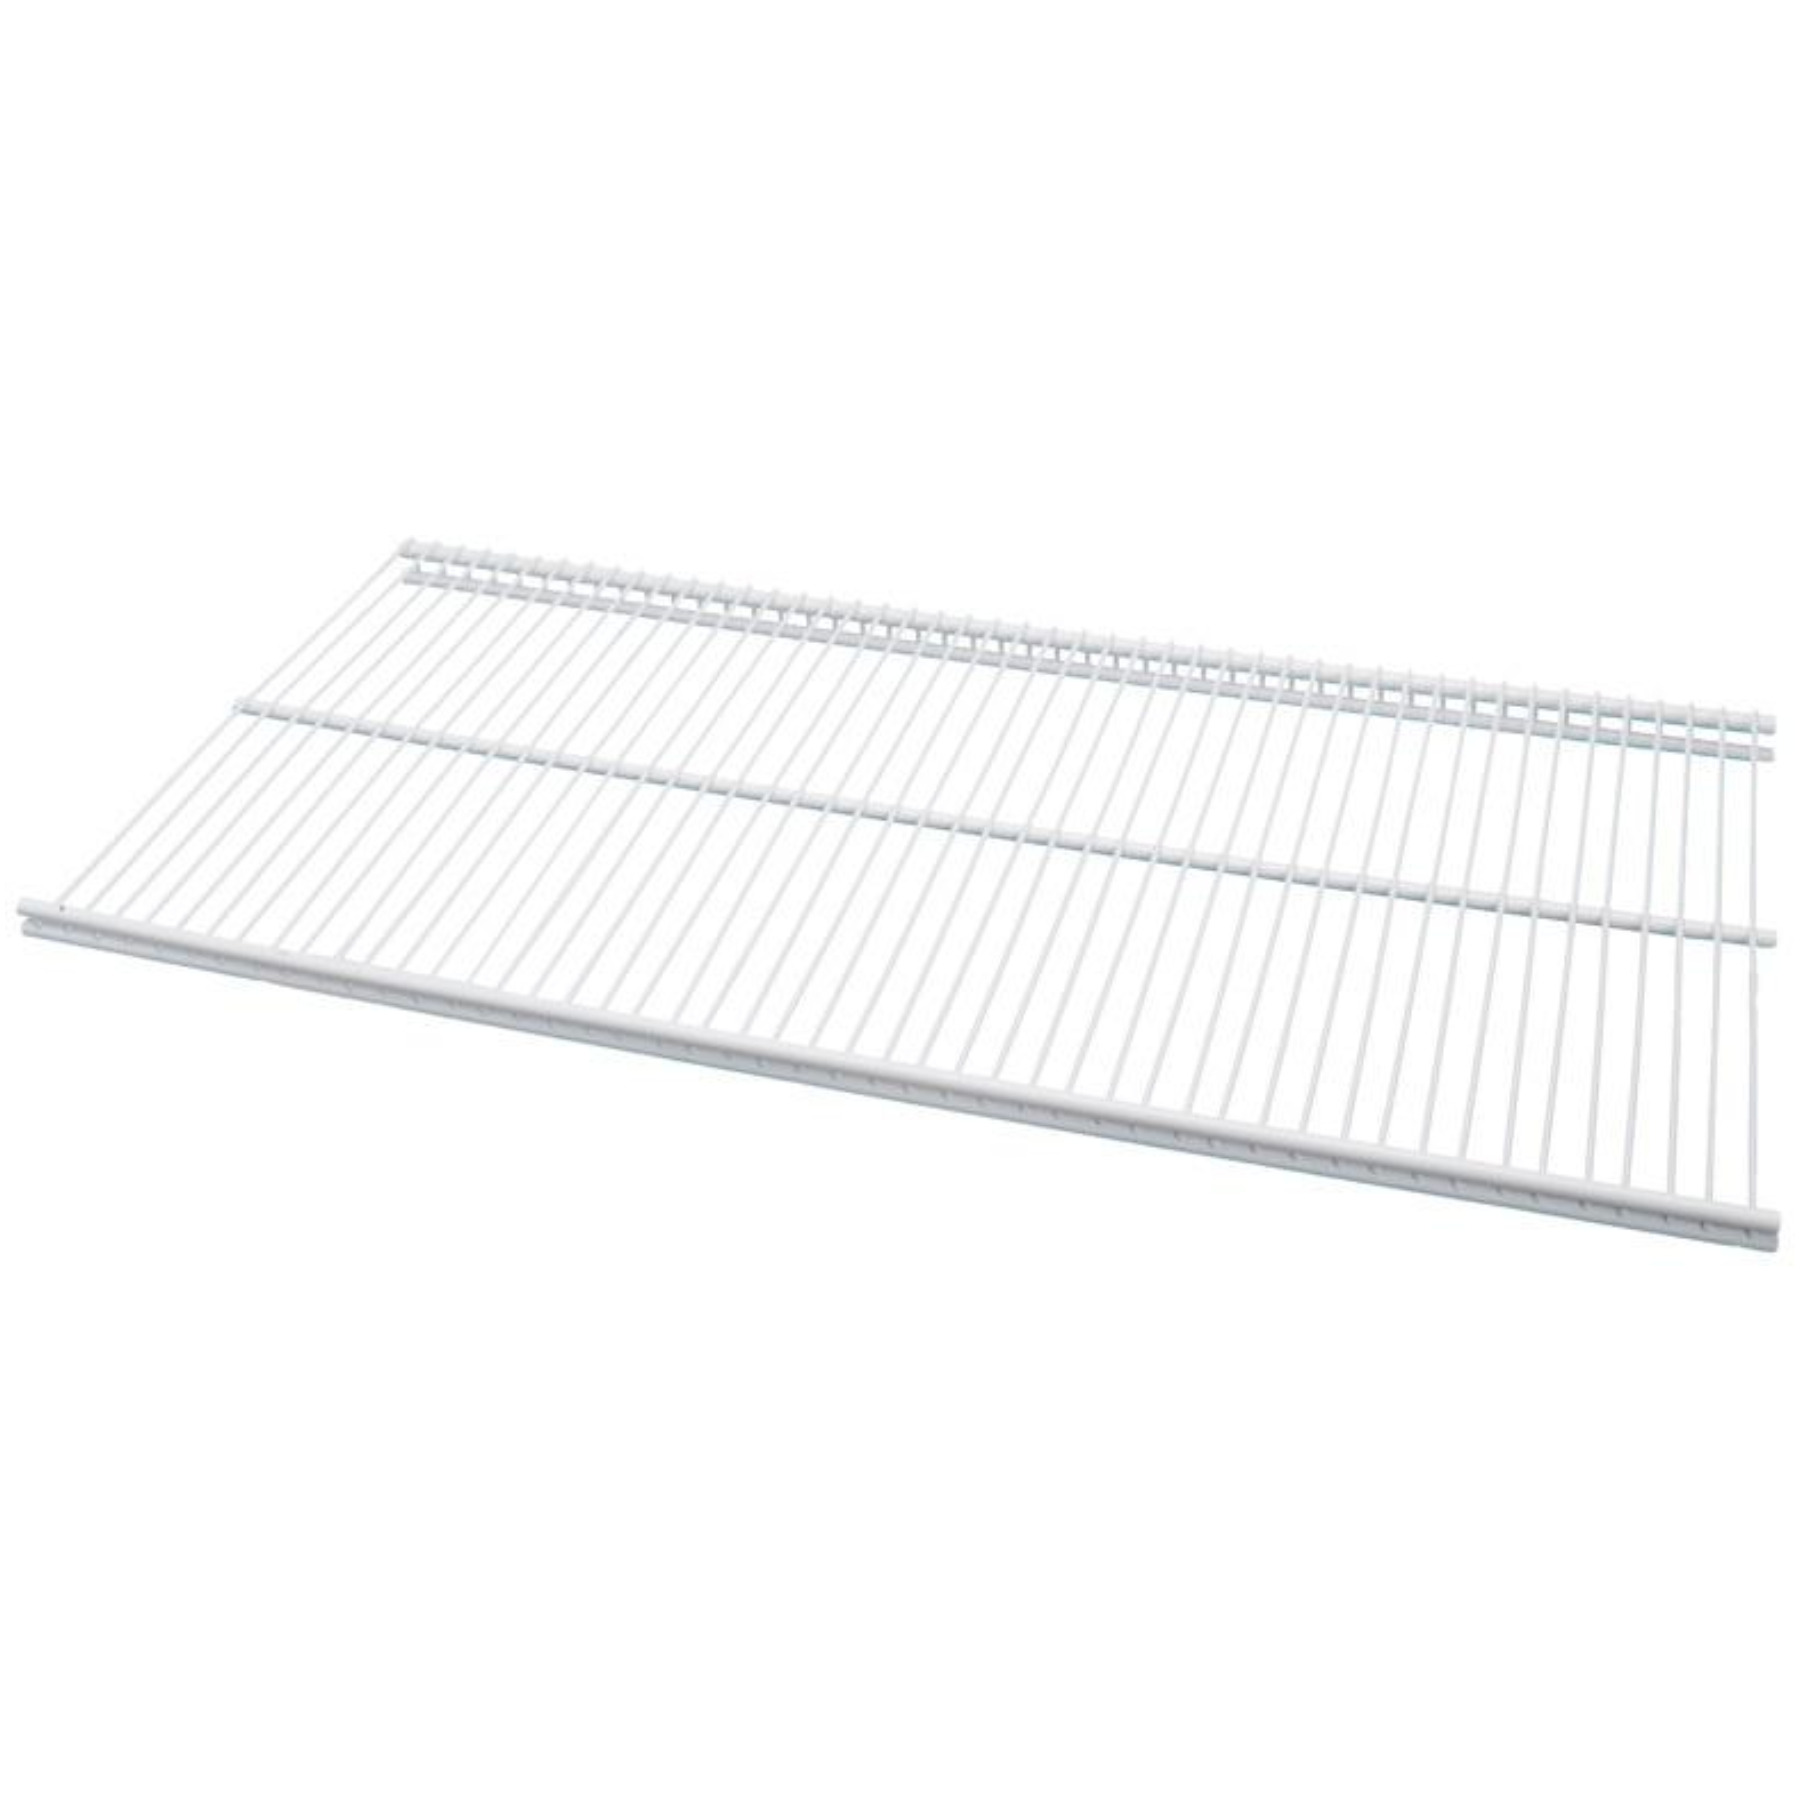 1813123611 36X12 White Vent Shelf